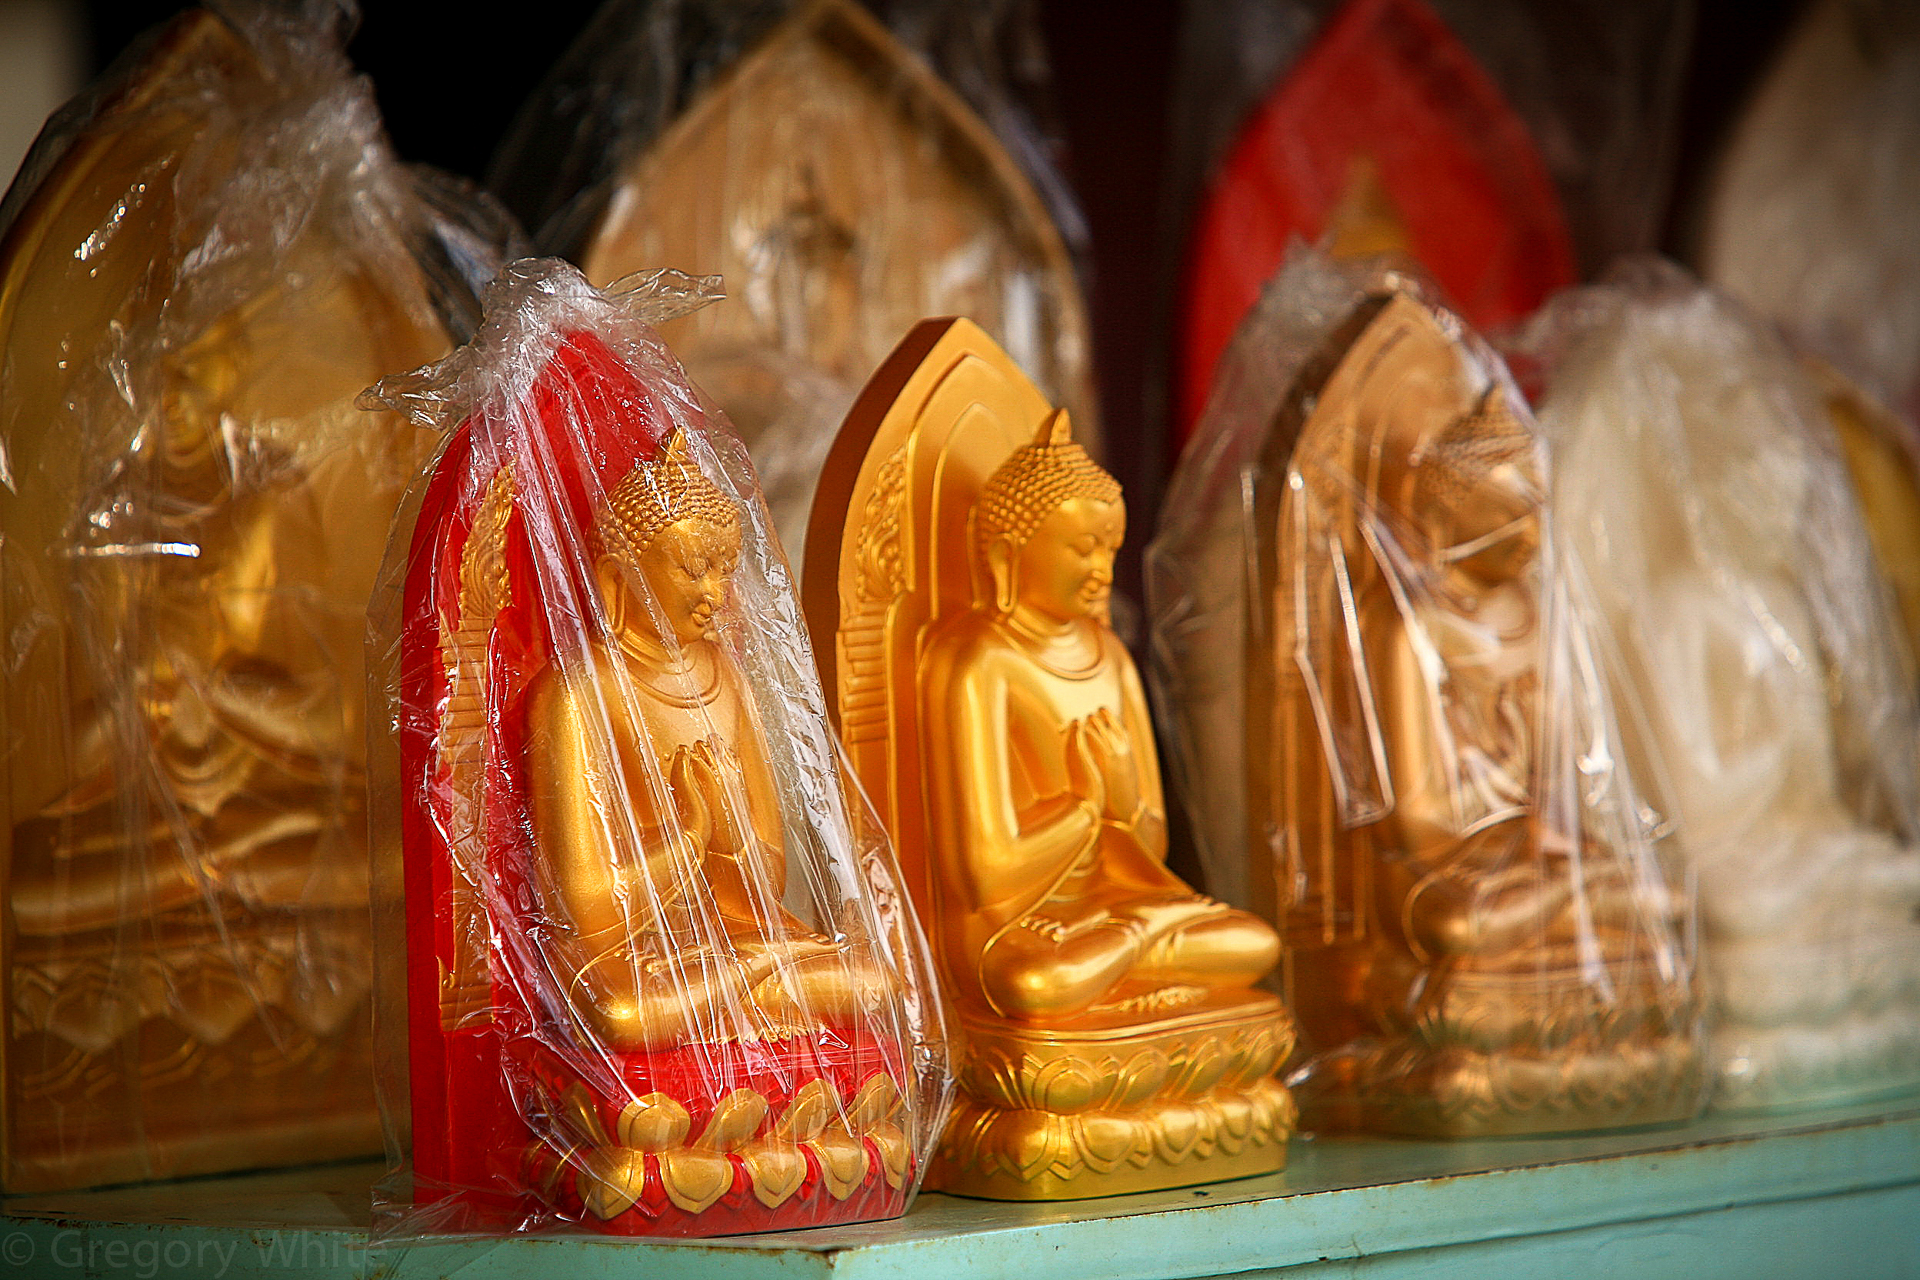 Buddhas for sale.